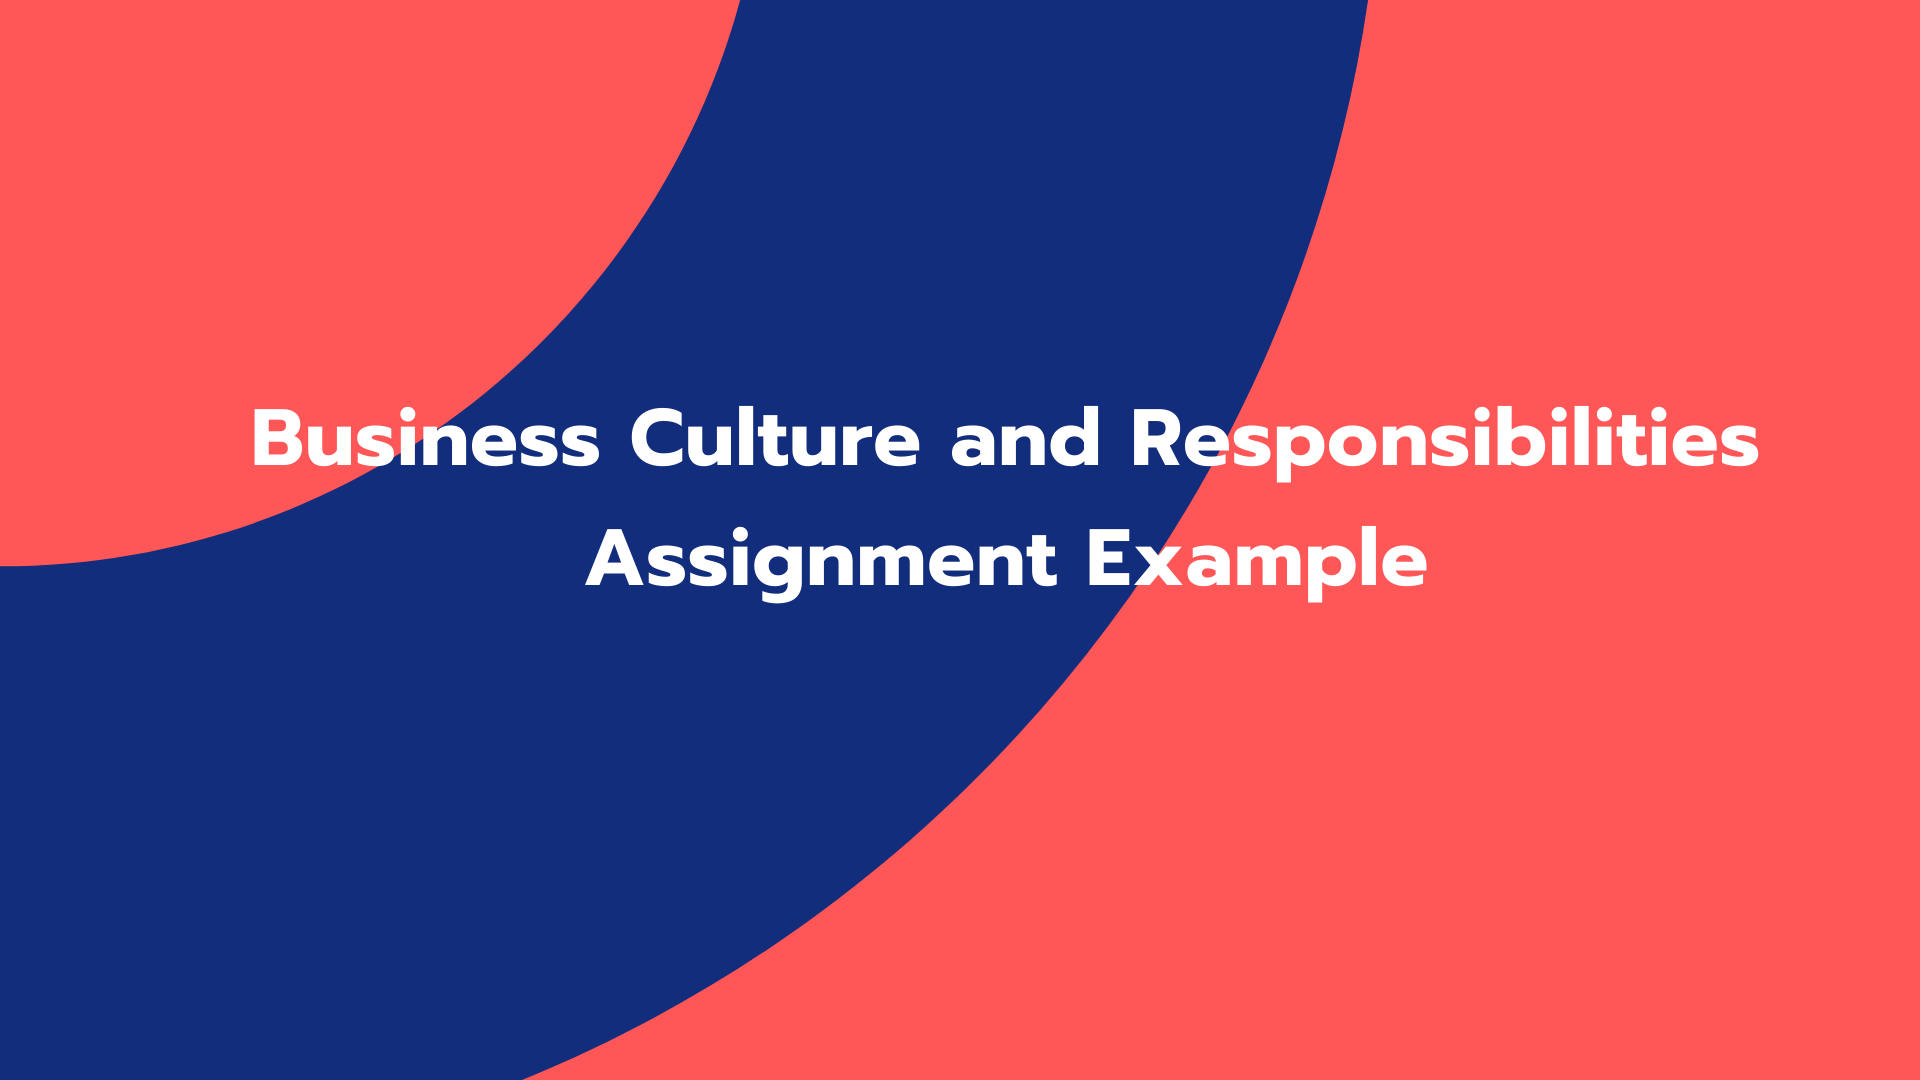 Business Culture and Responsibilities Assignment Example